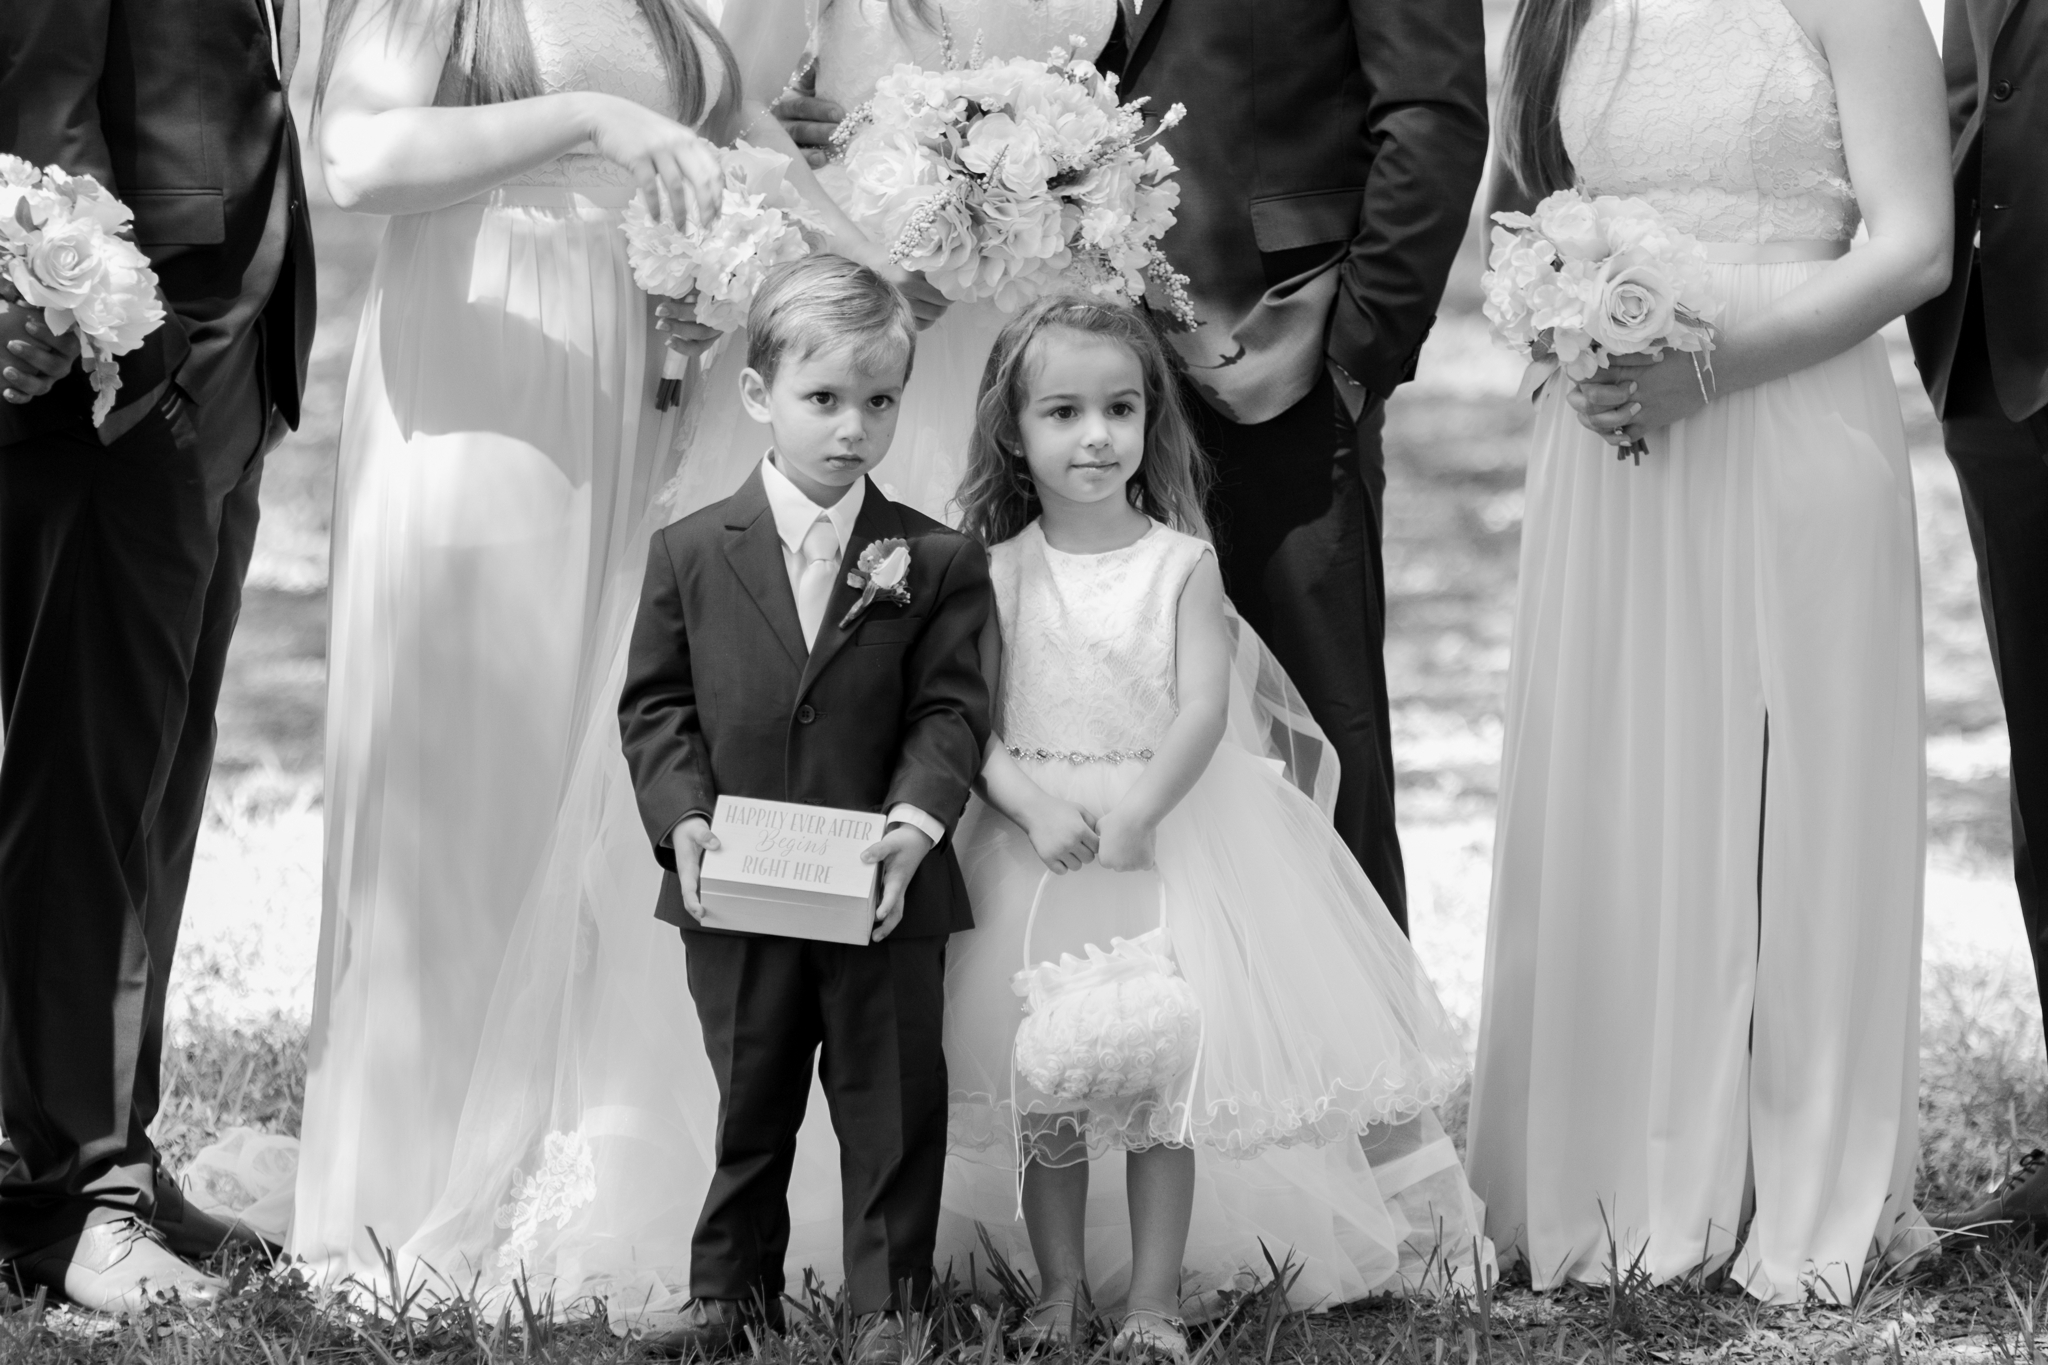 Stonebridge-Weddings-and-Events-at-The-Lange-Farm-Wedding-Photos-Kaylynne-Zack-001_2060.jpg